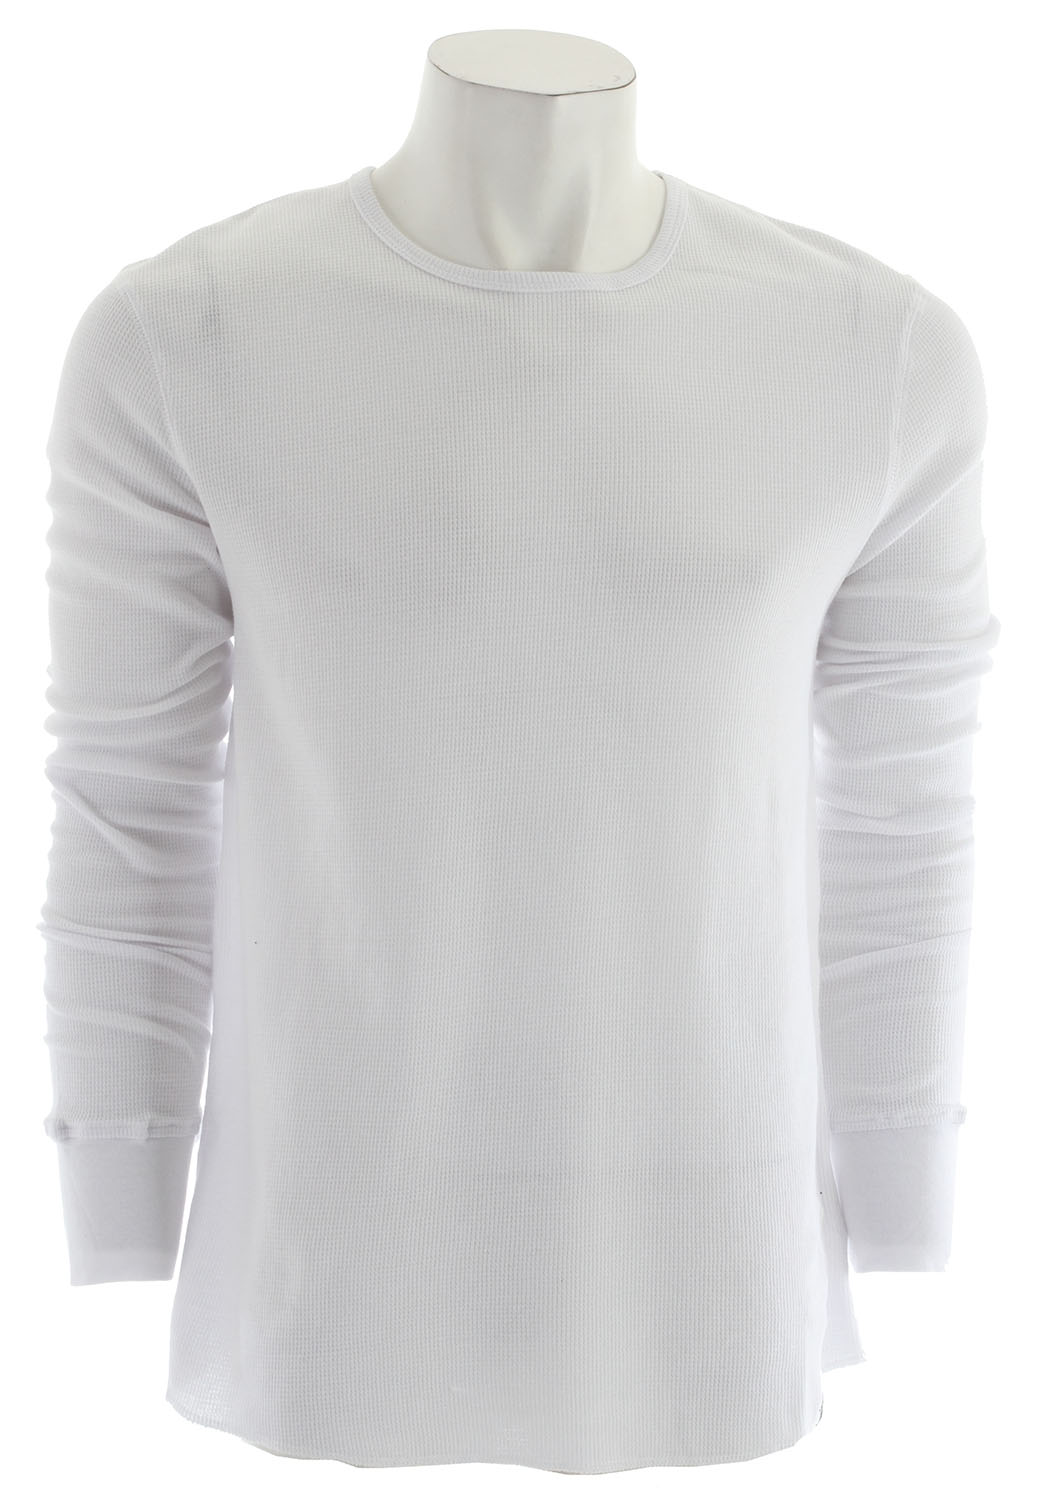 Key Features of the Analog 2 Pack Thermals 2 pack slim fit thermal 55/45 cotton/poly - $33.95